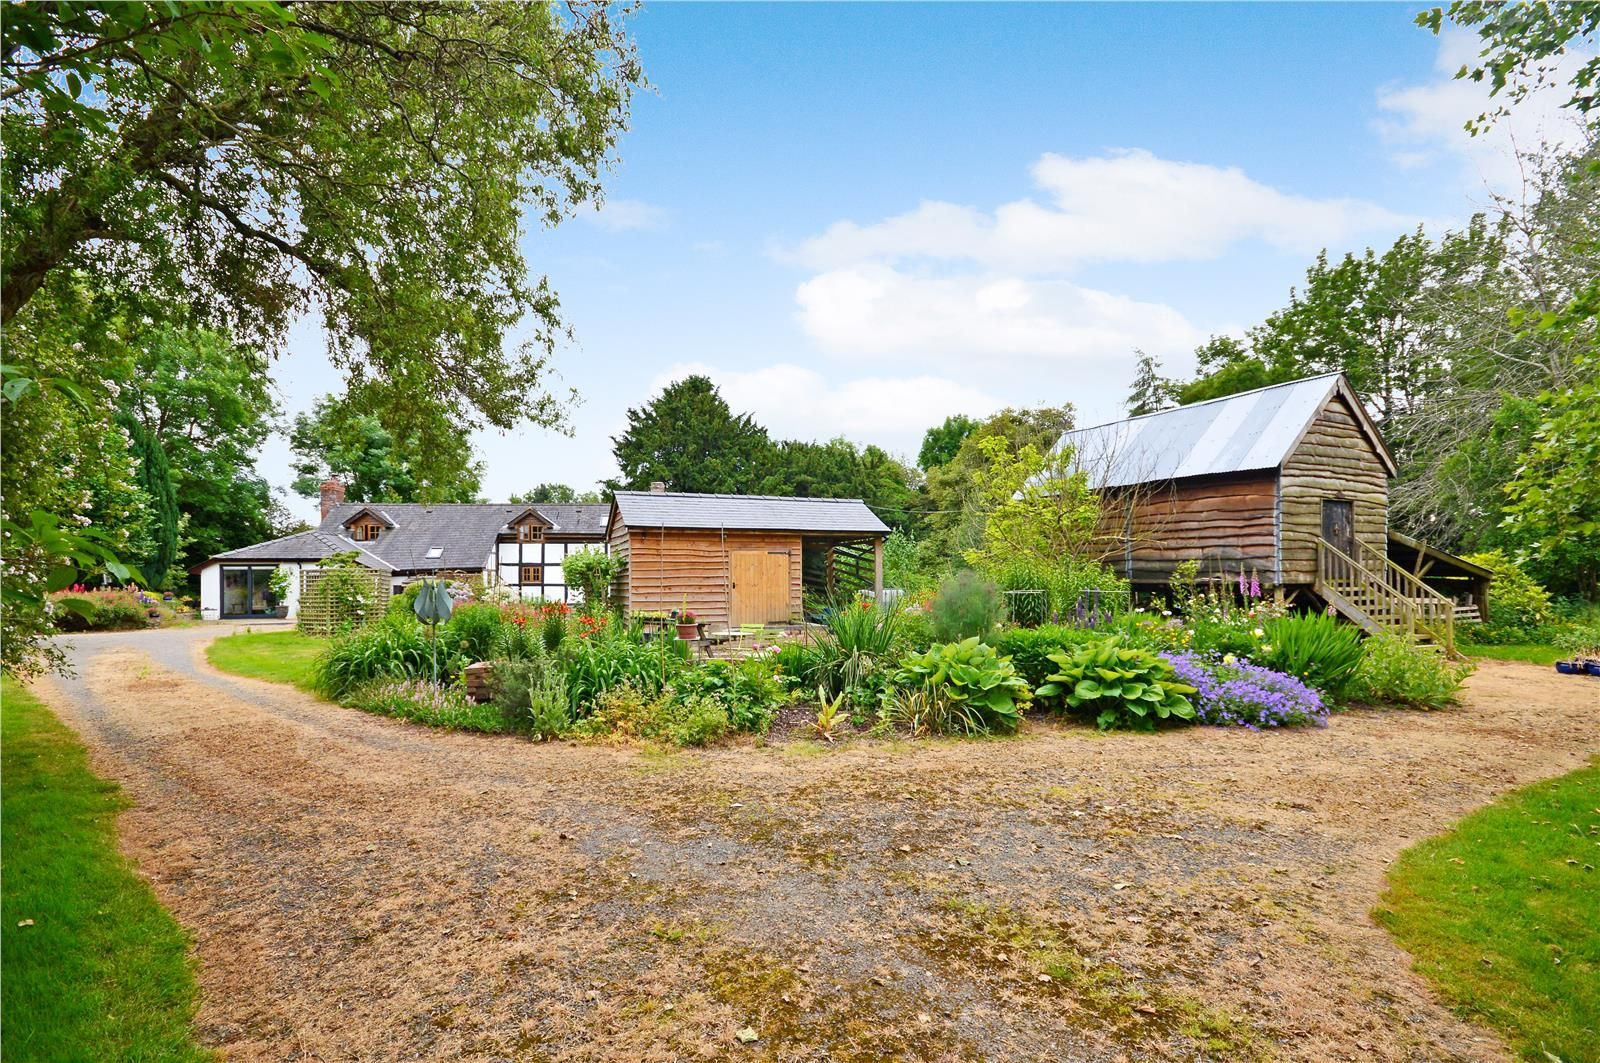 3 bed detached for sale in Letton, HR3